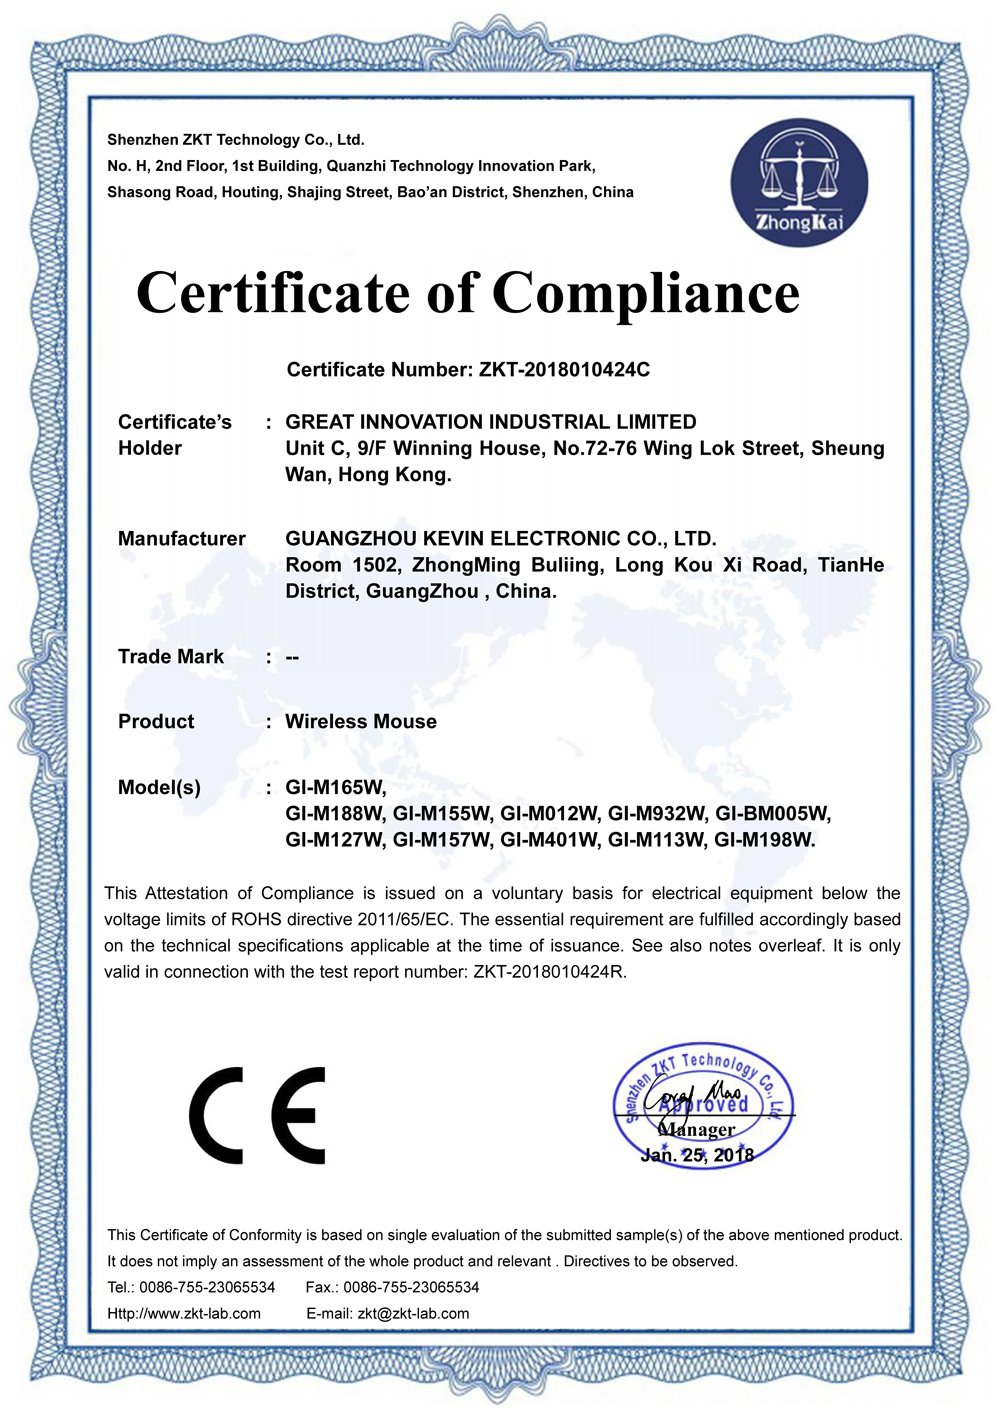 Company Overview - Guangzhou Kevin Electronic Co , Ltd